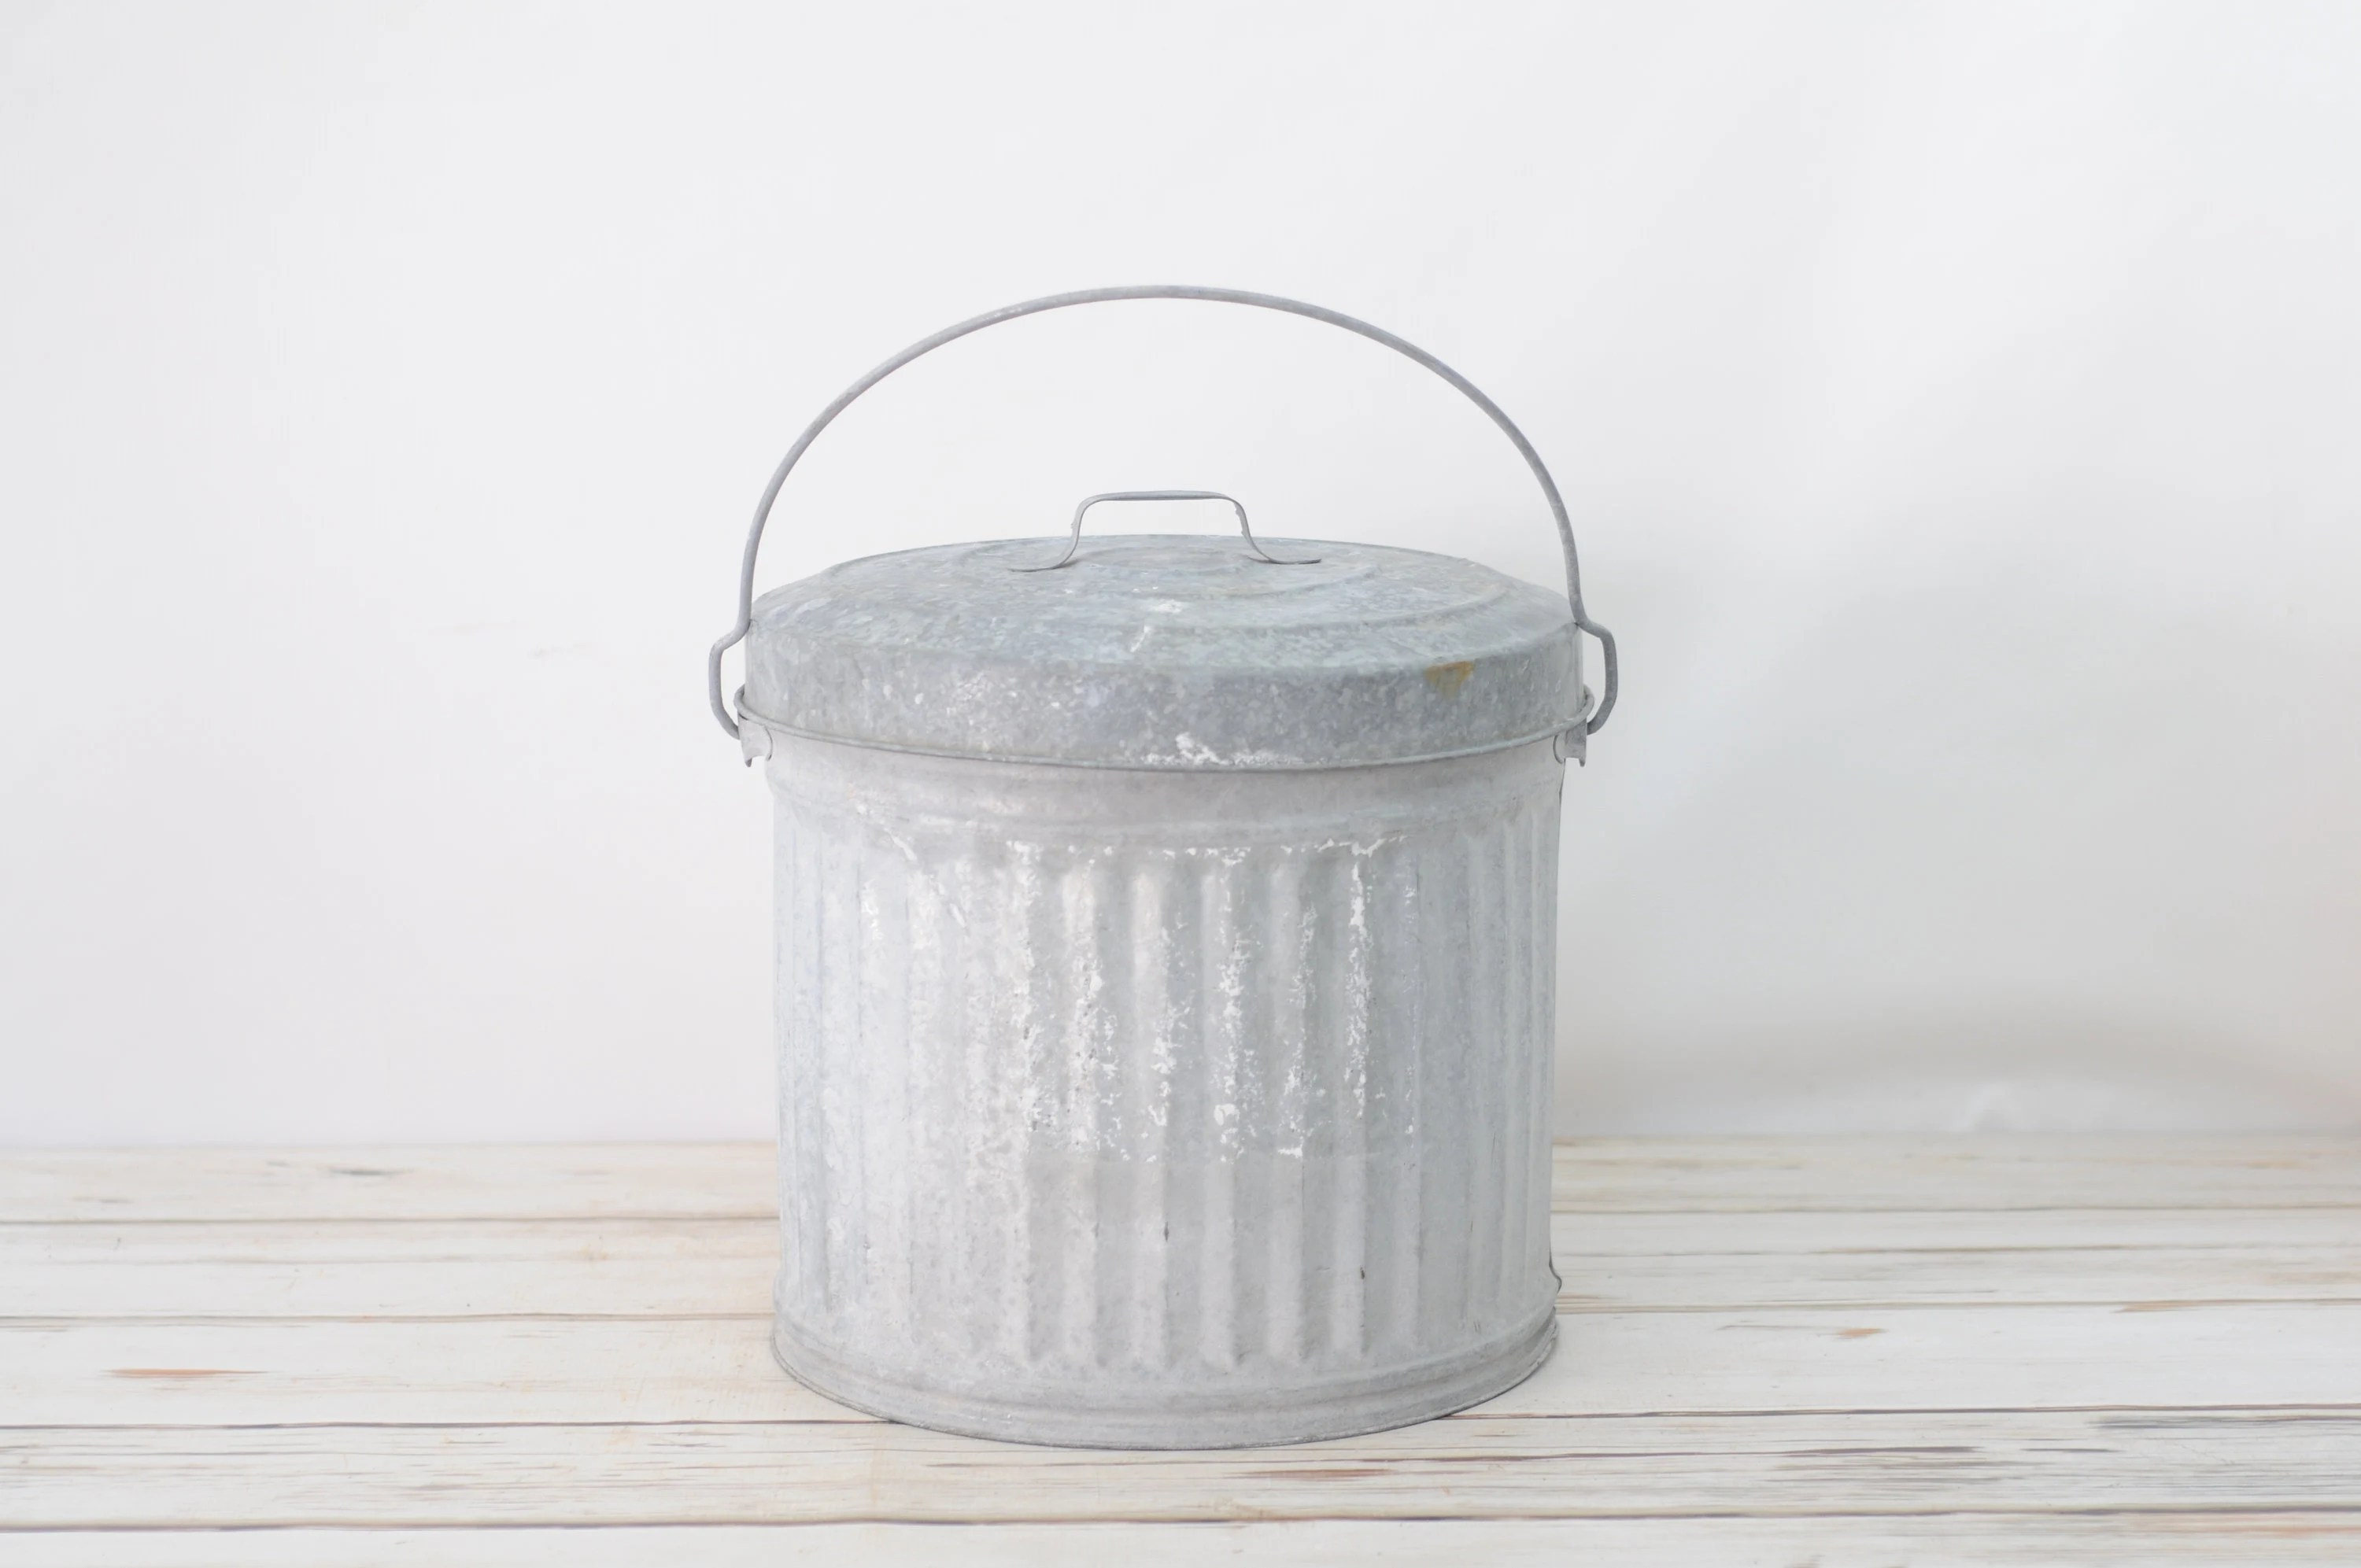 Small White Trash Can With Lid Small Vintage Zinc Galvanized Lawson Trash Can Waste Can Waste Receptacle